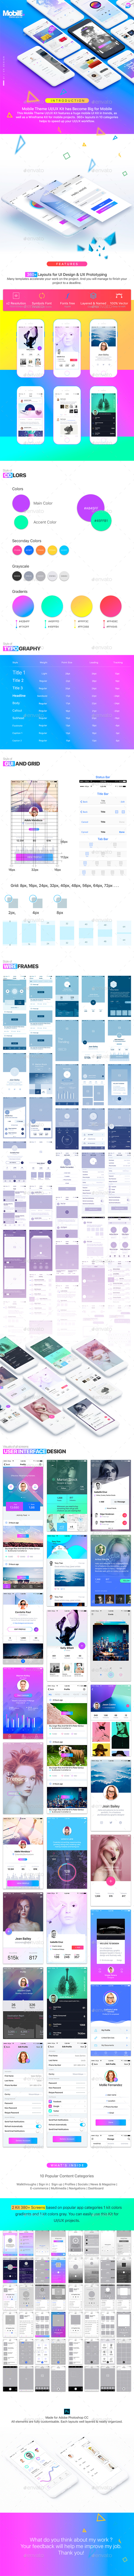 Smallee - Flat User Interface Set (User Interfaces)